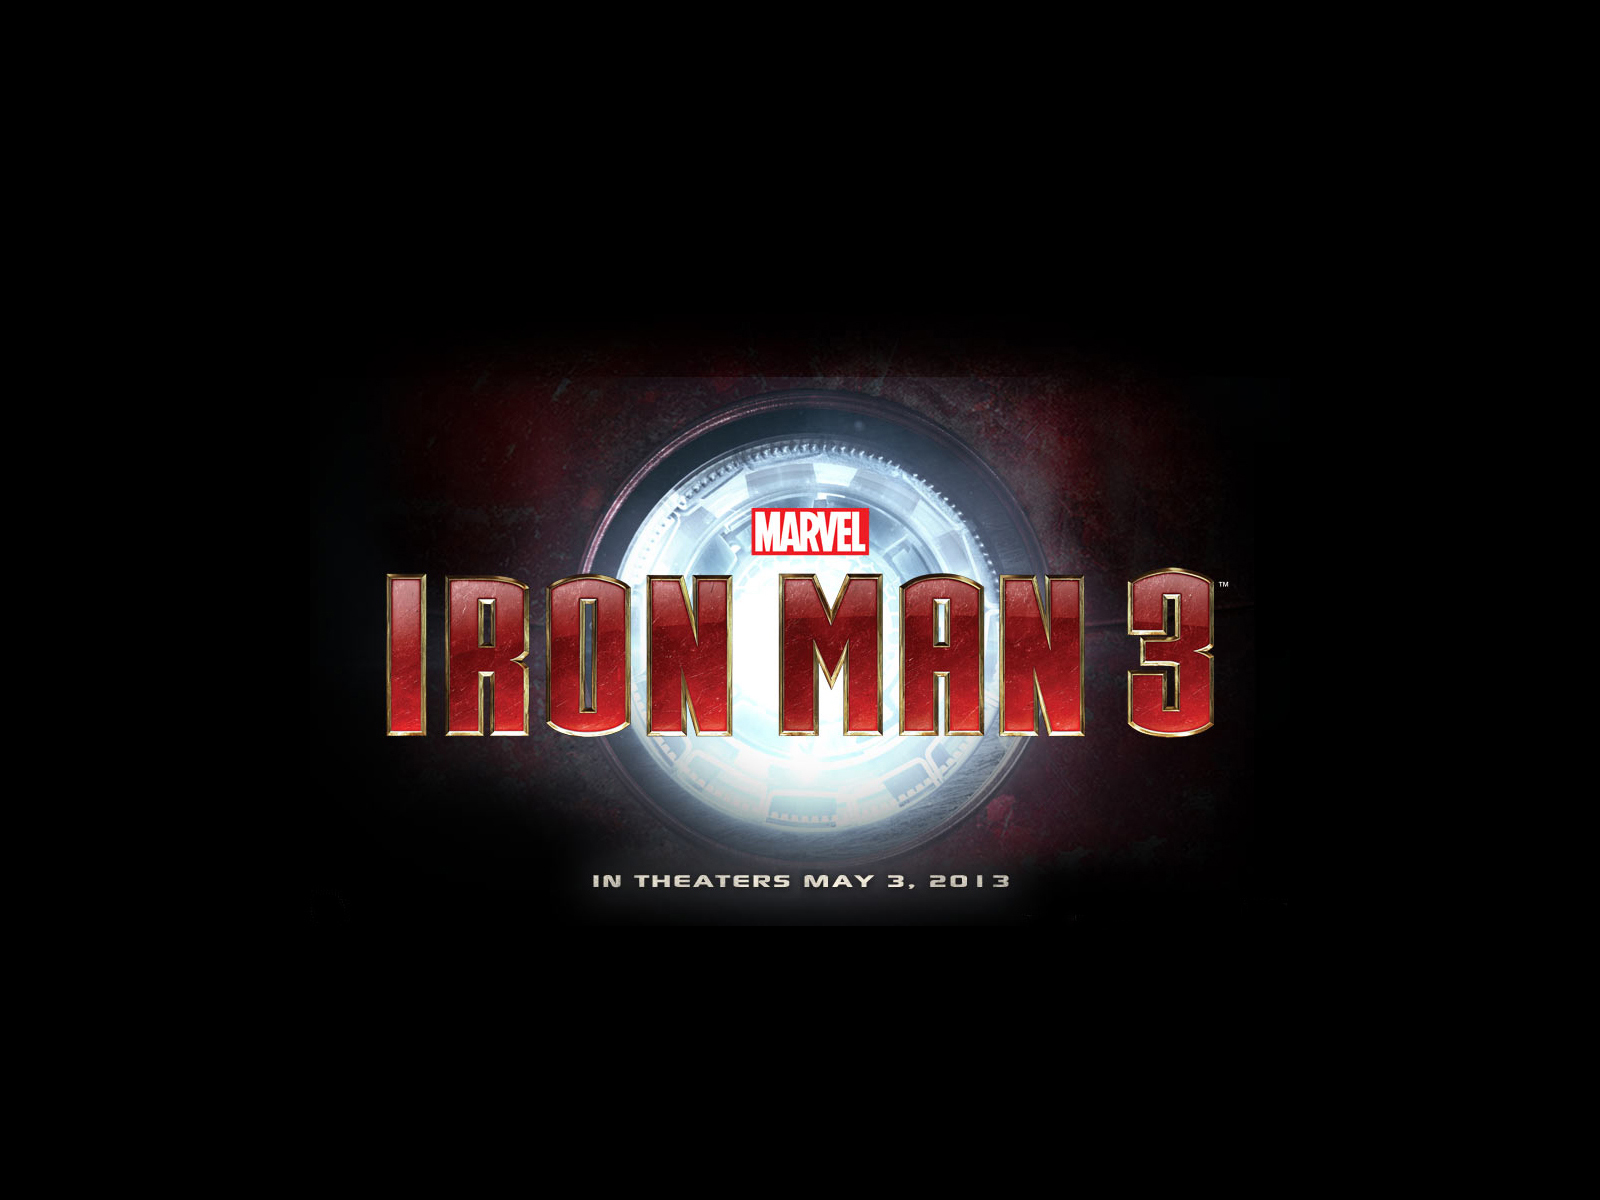 1600x1200 Iron man 3 upcoming Wallpaper